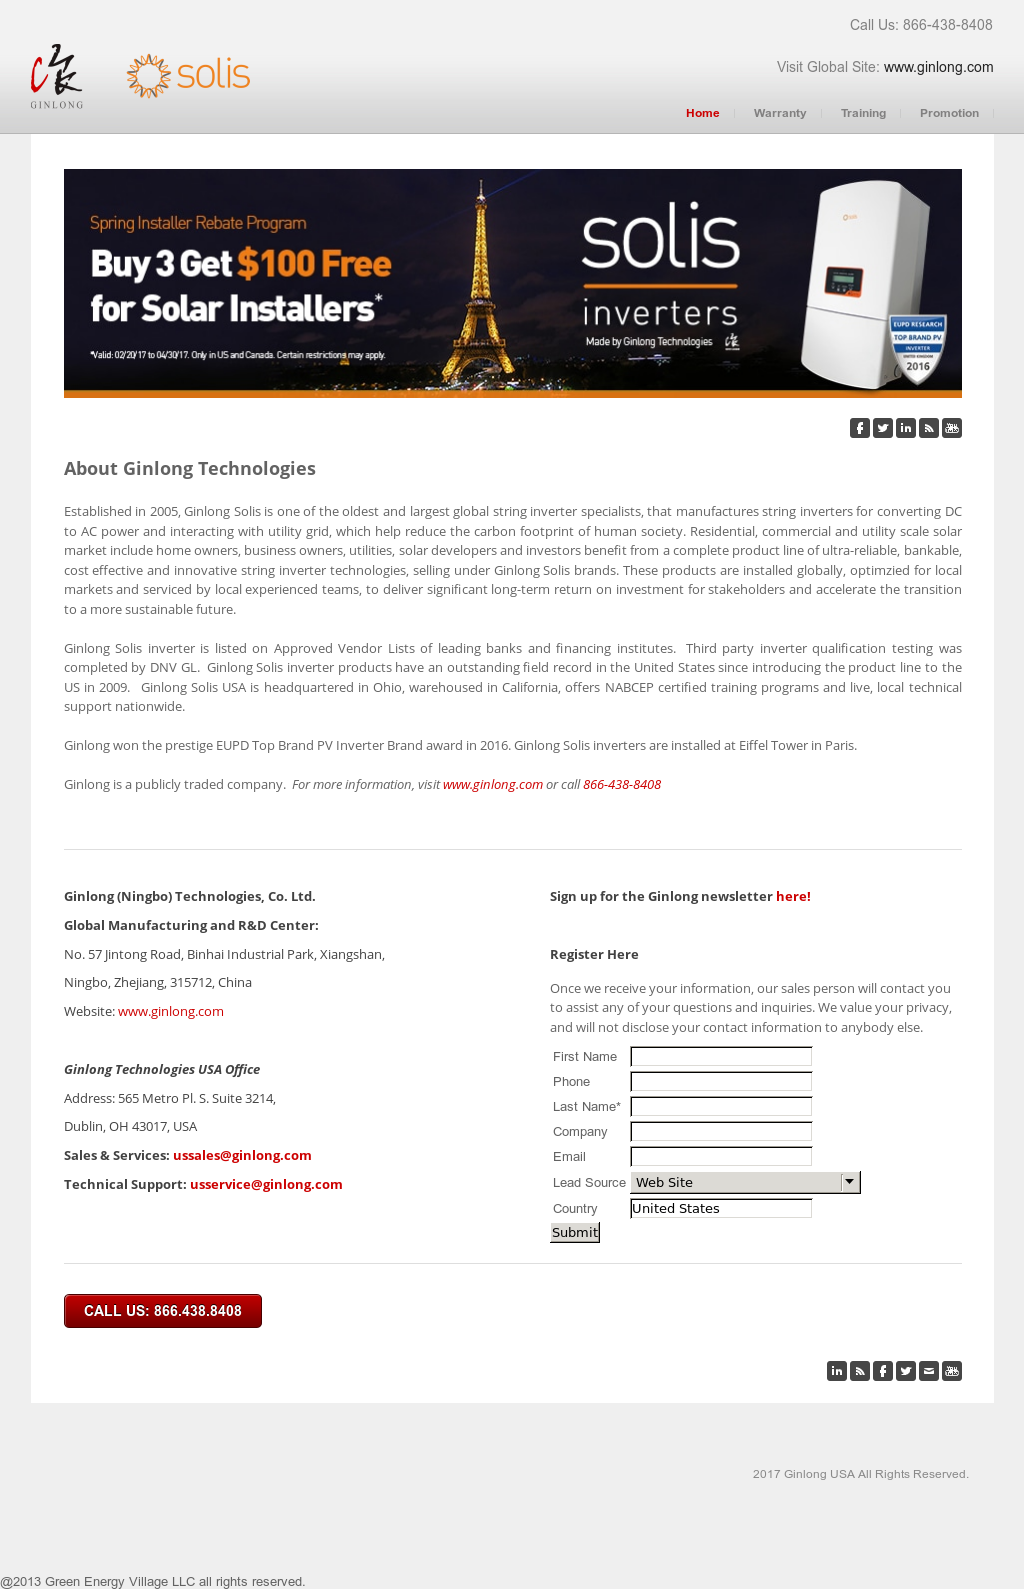 Ginlong Solis Pv Inverters Competitors, Revenue and